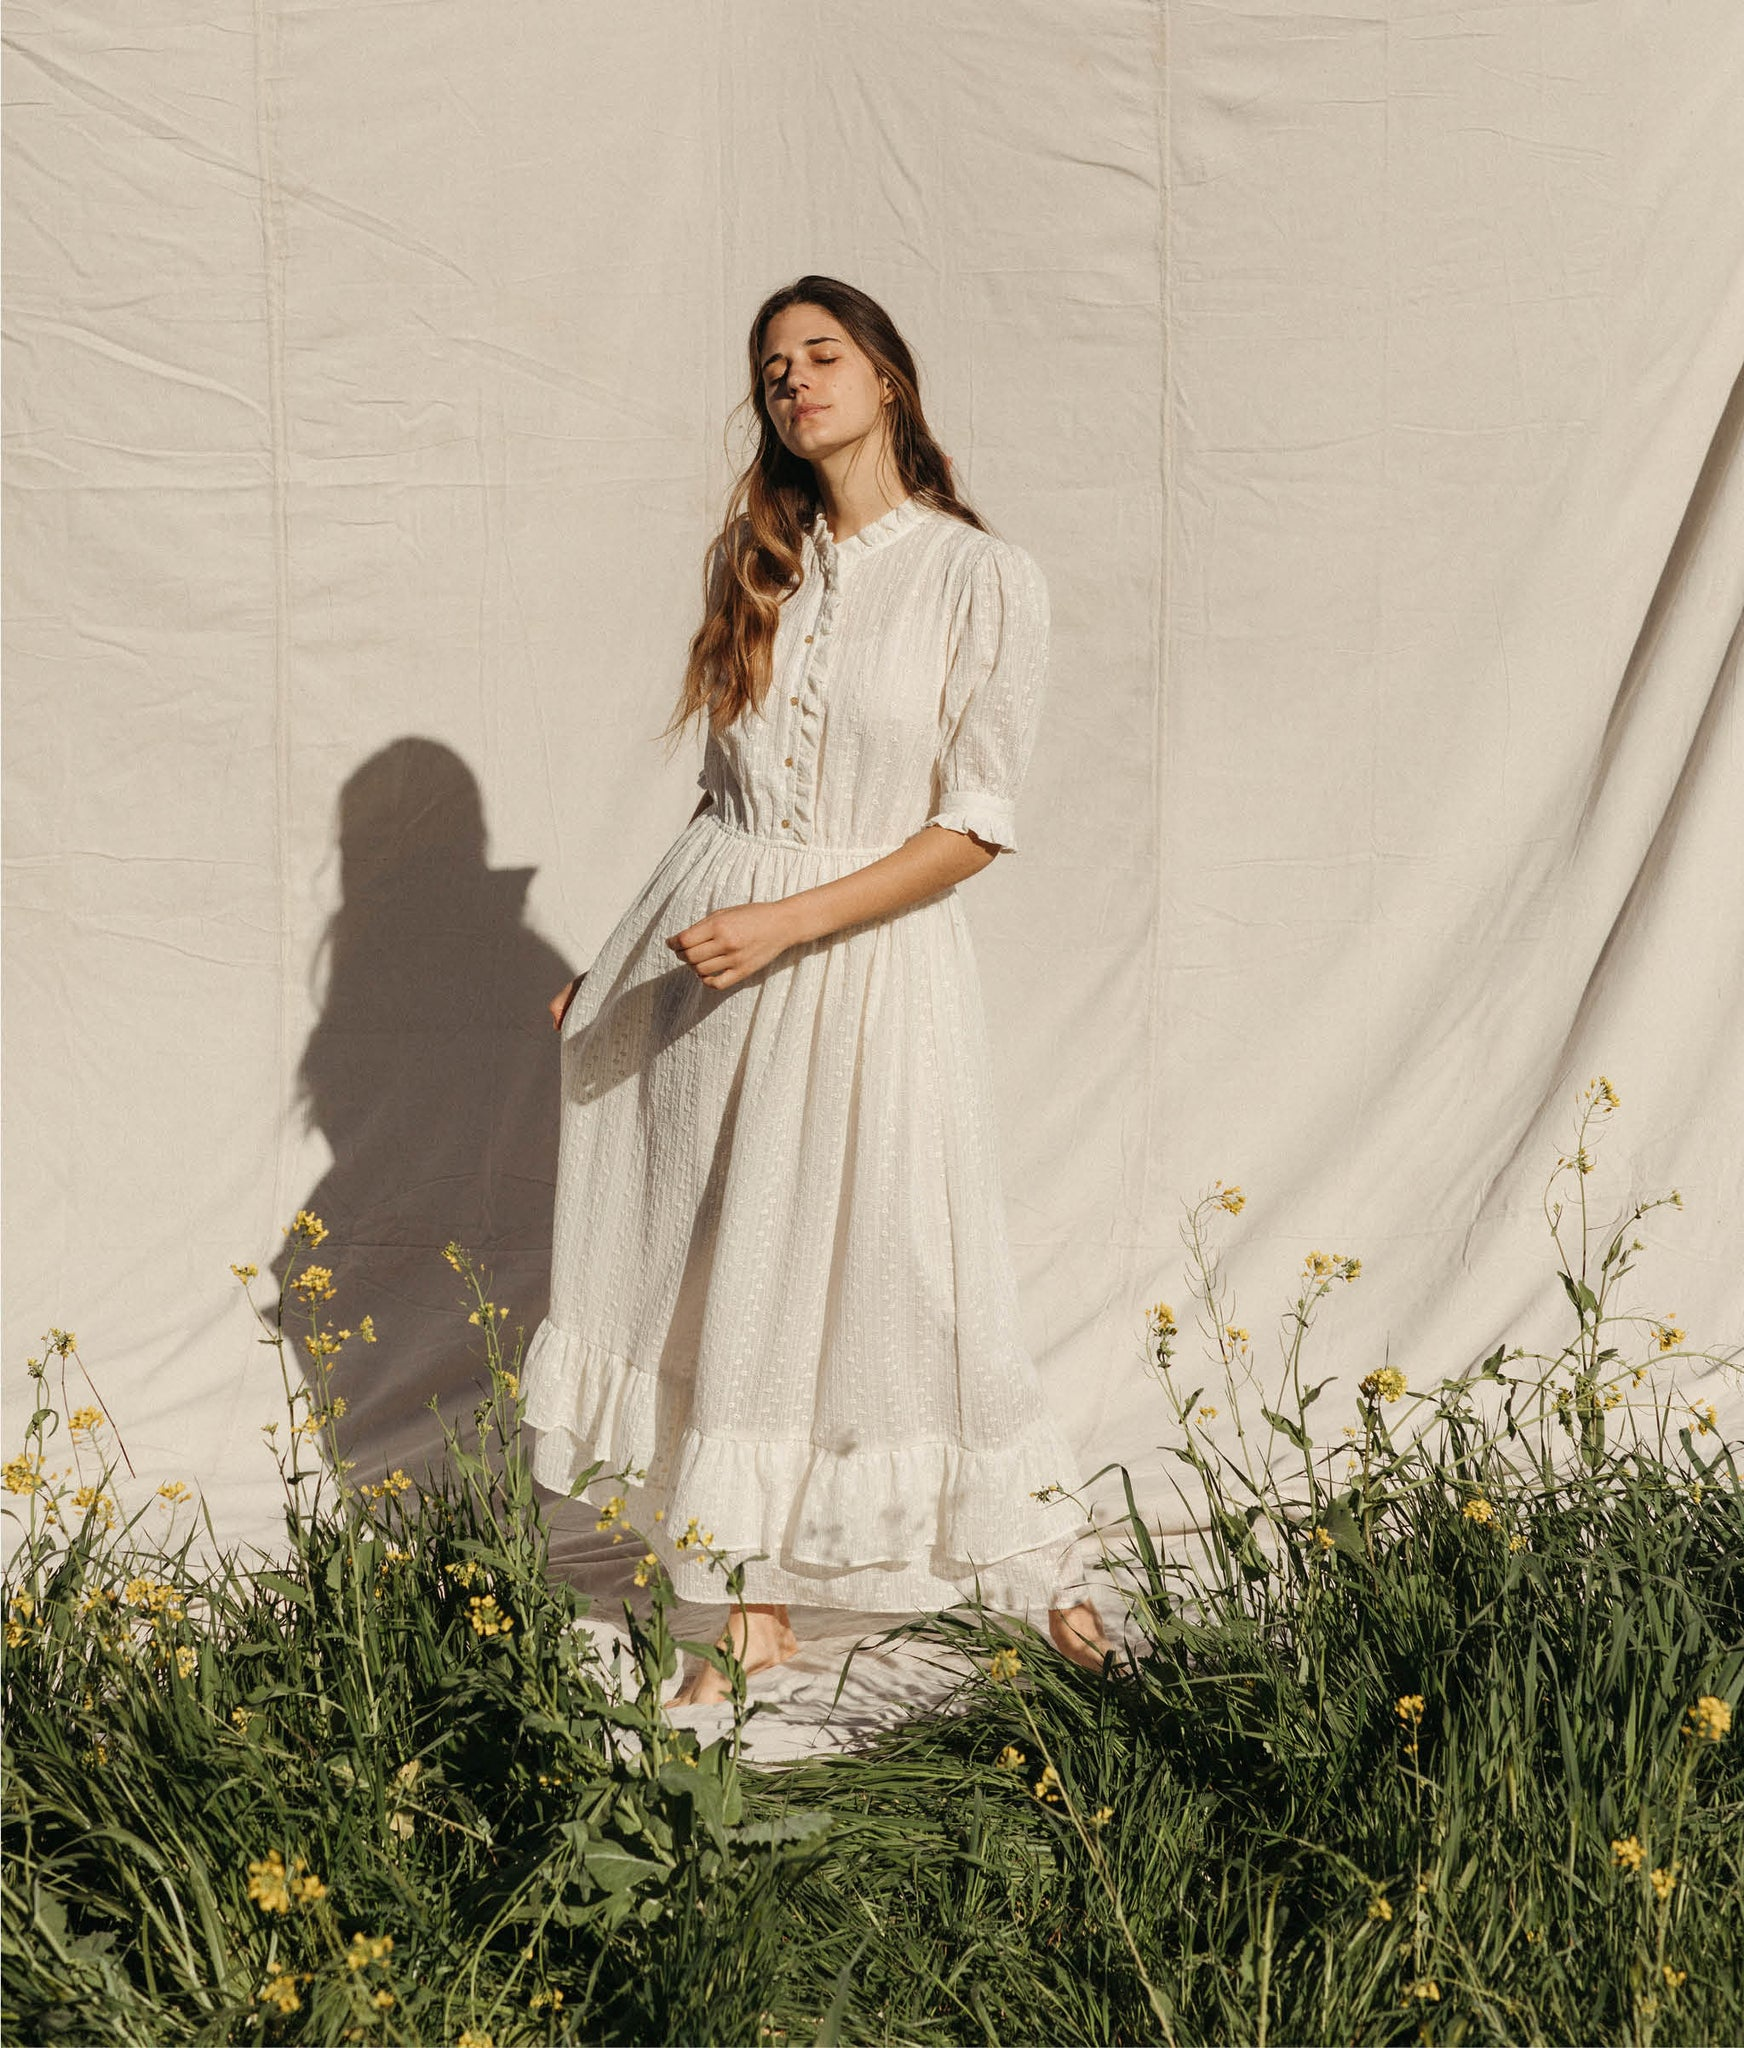 The Linden Dress | Embroidered Blooms (4-of-a-Kind)